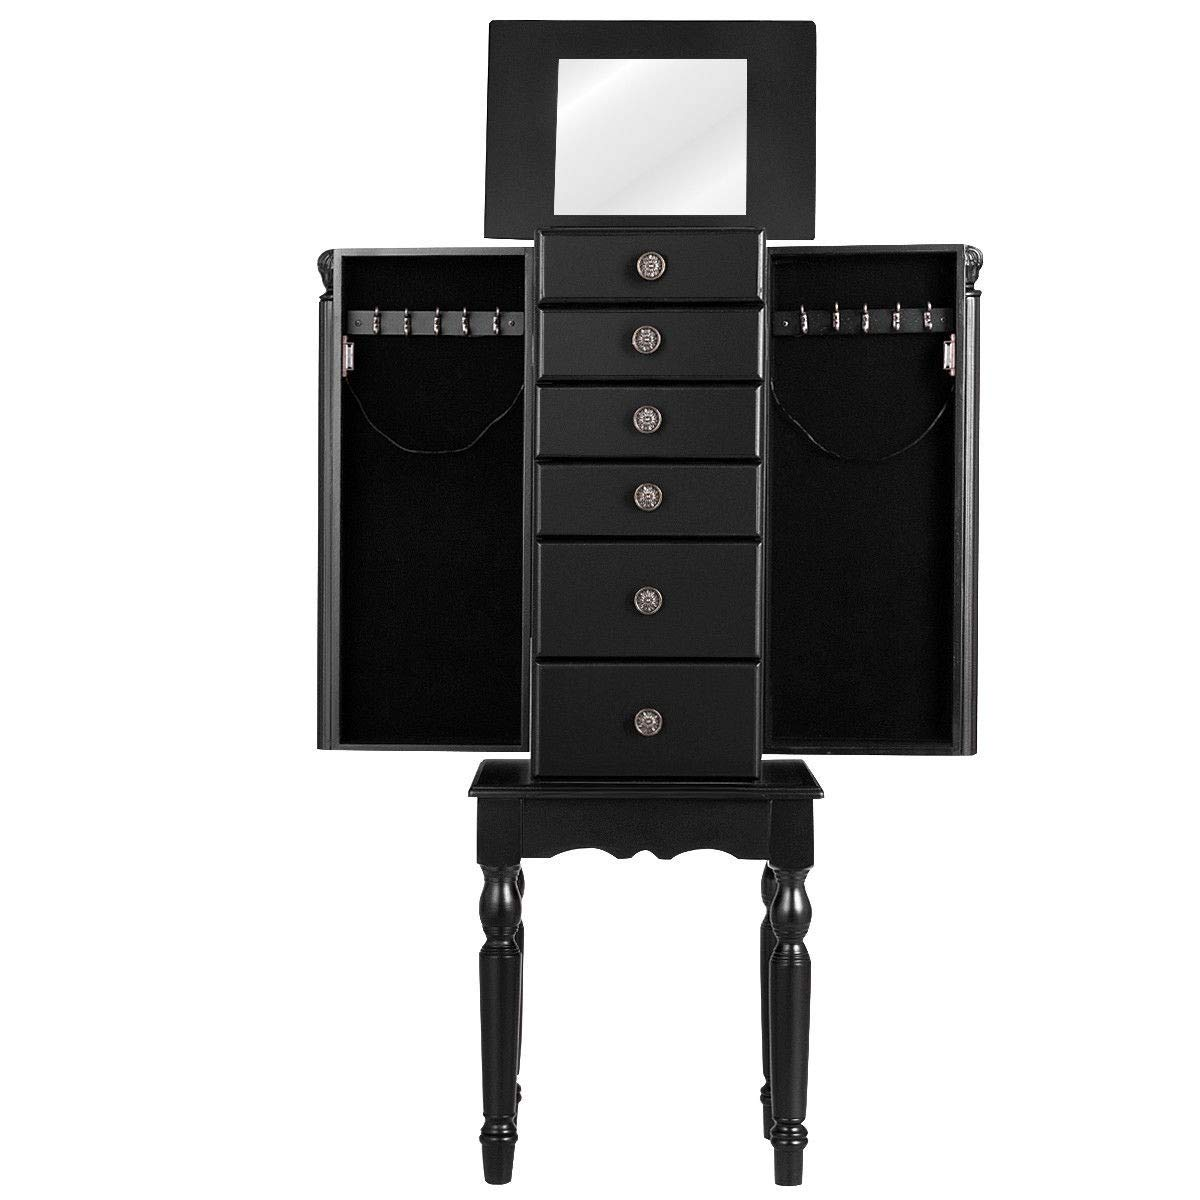 USA_BEST_SELLER Armoire Storage Box Chest Standing Cabinet Jewelry Holder Organizer